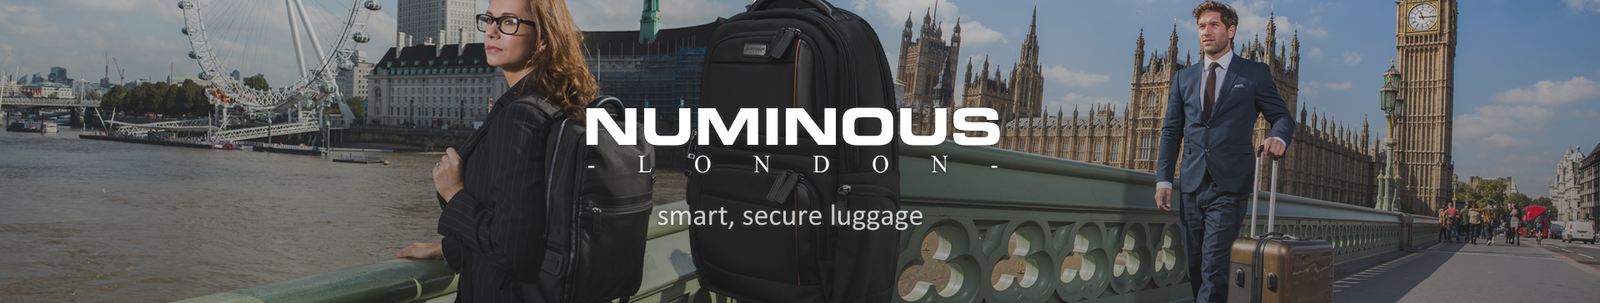 numinousluggage